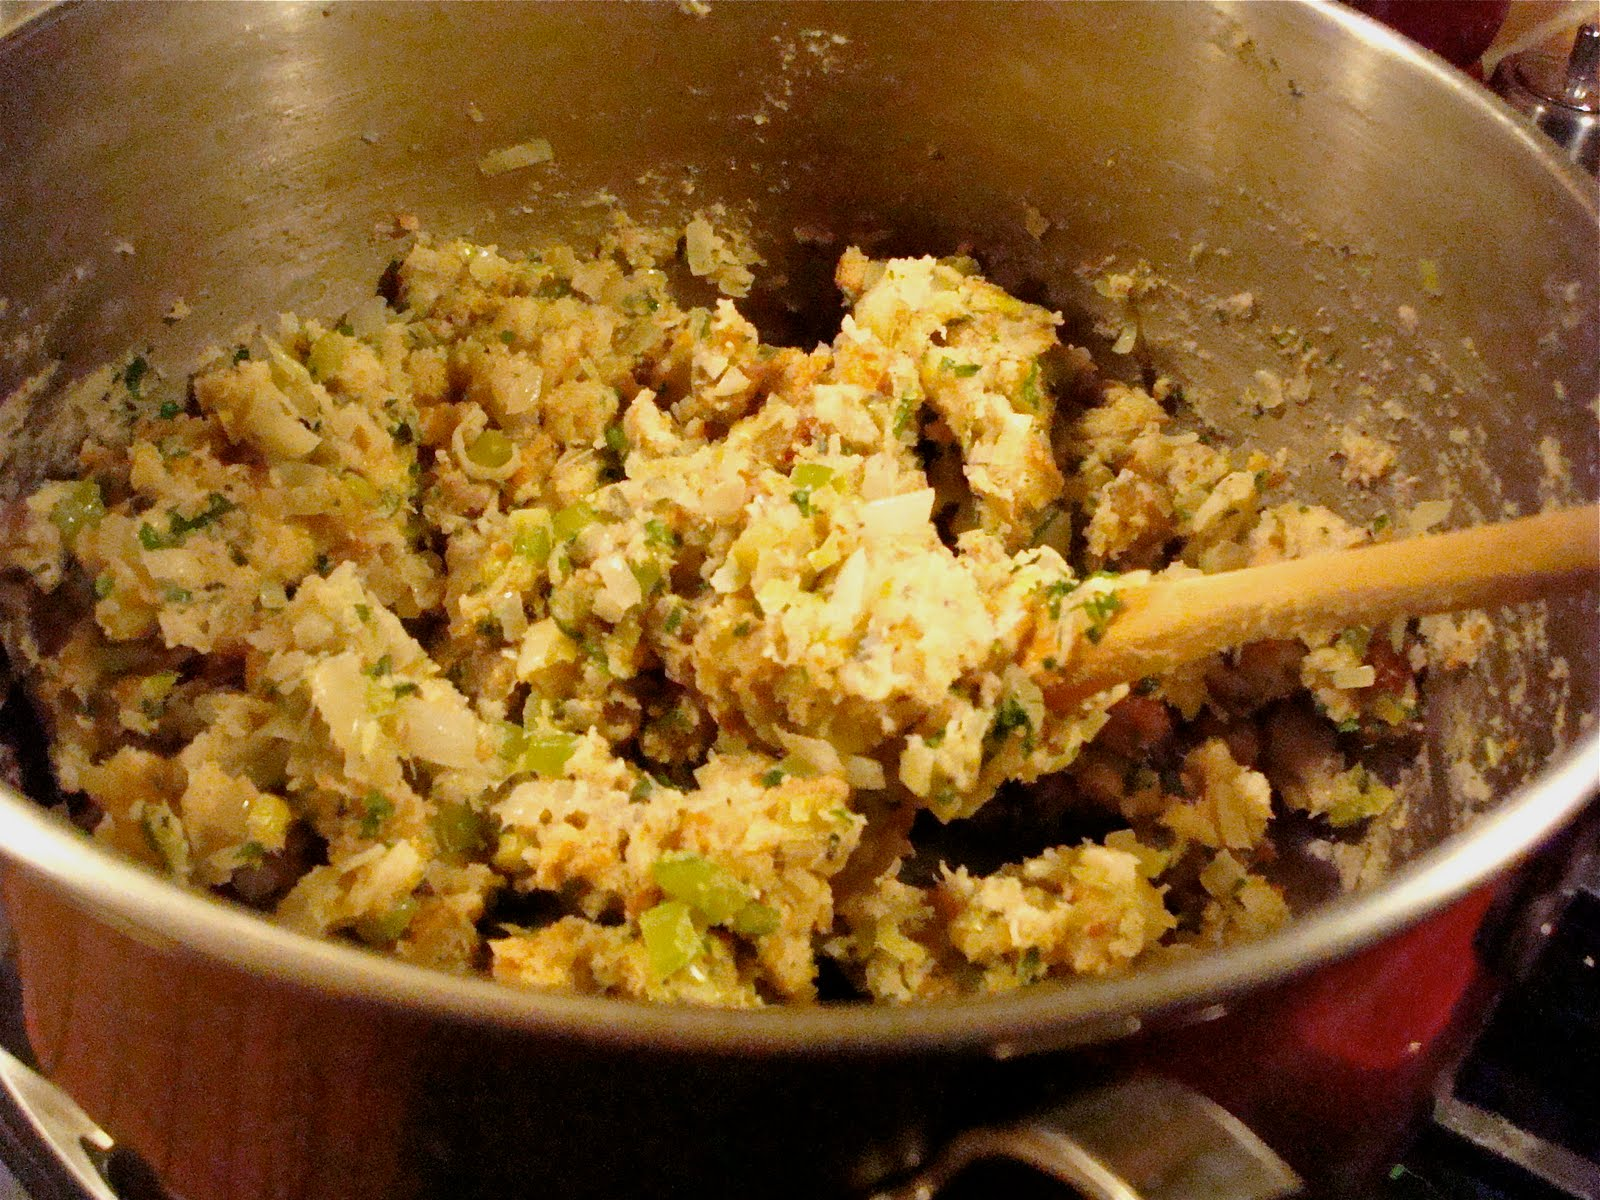 Beach Eats: Recipe for Herbed Bread Stuffing